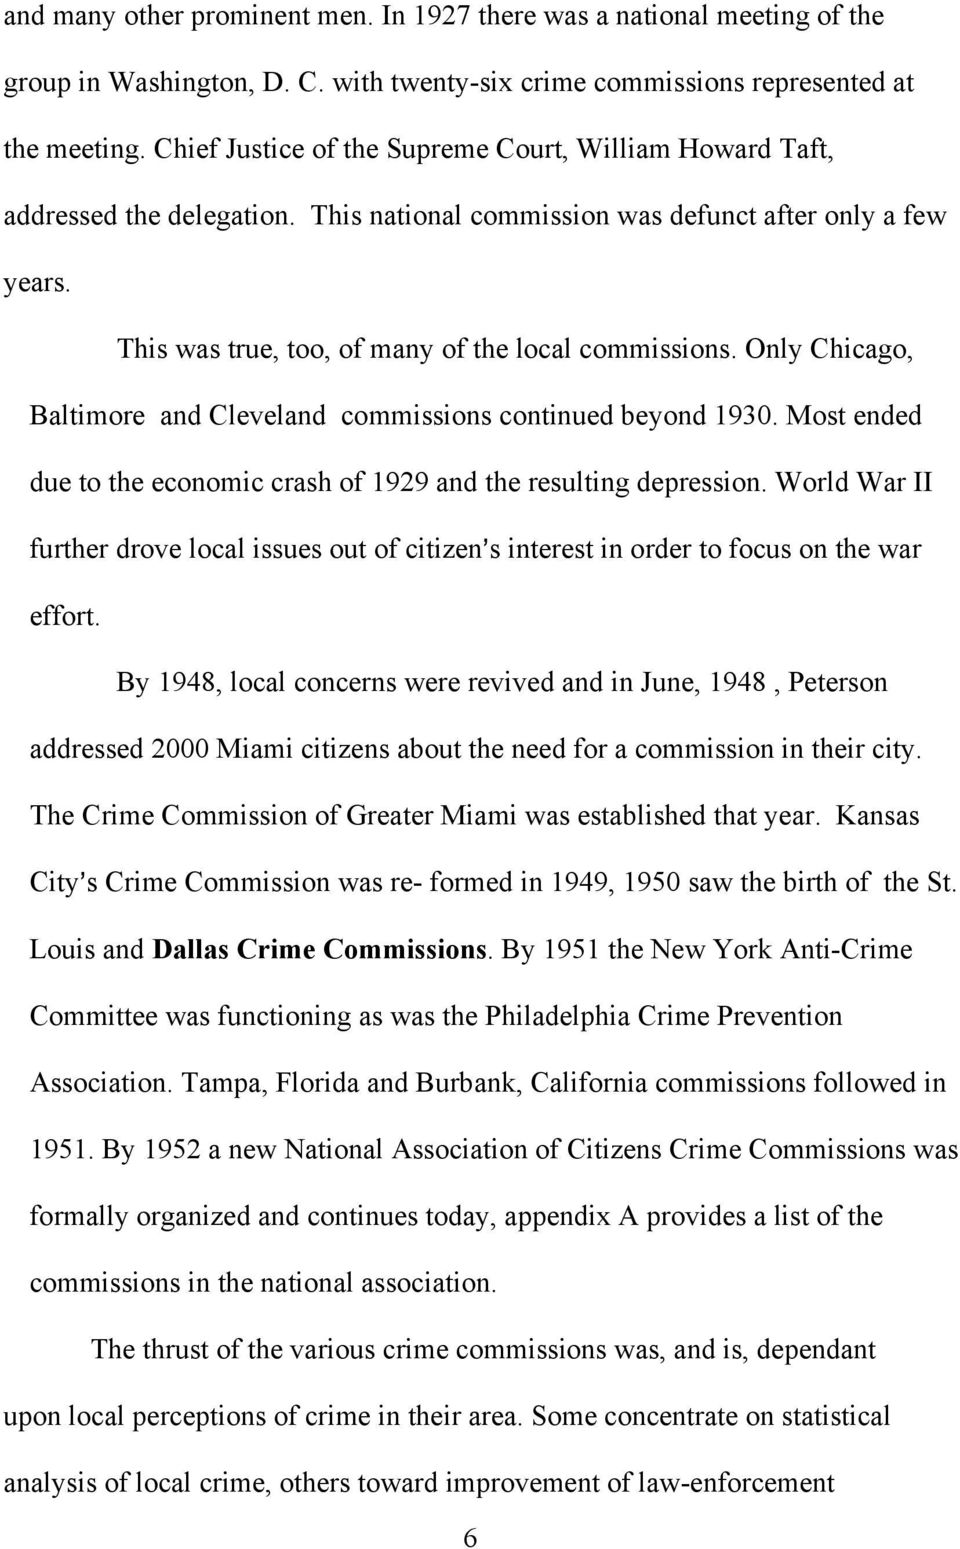 Only Chicago, Baltimore and Cleveland commissions continued beyond 1930. Most ended due to the economic crash of 1929 and the resulting depression.